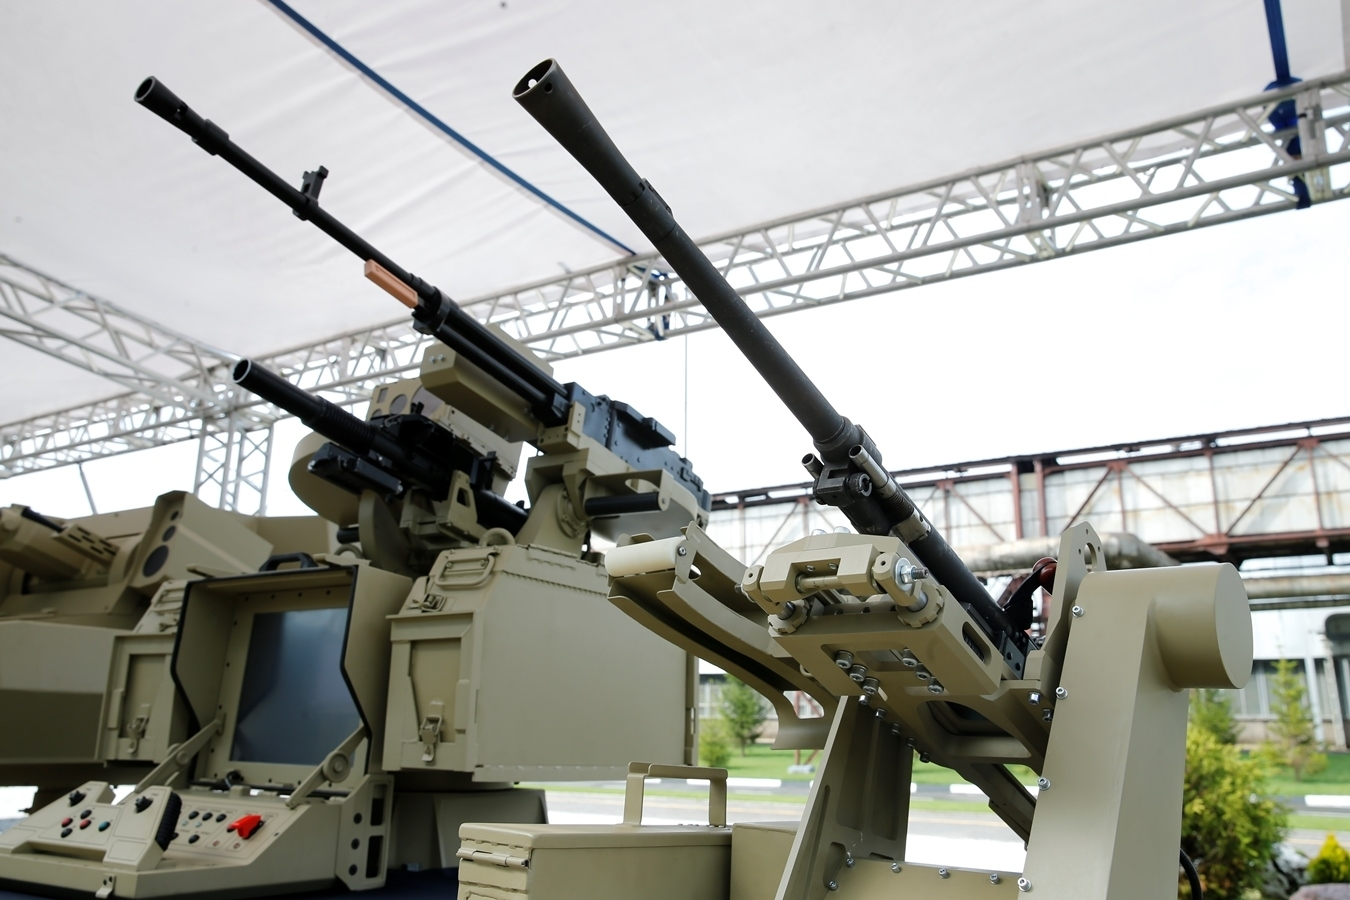 Russian automated weapon